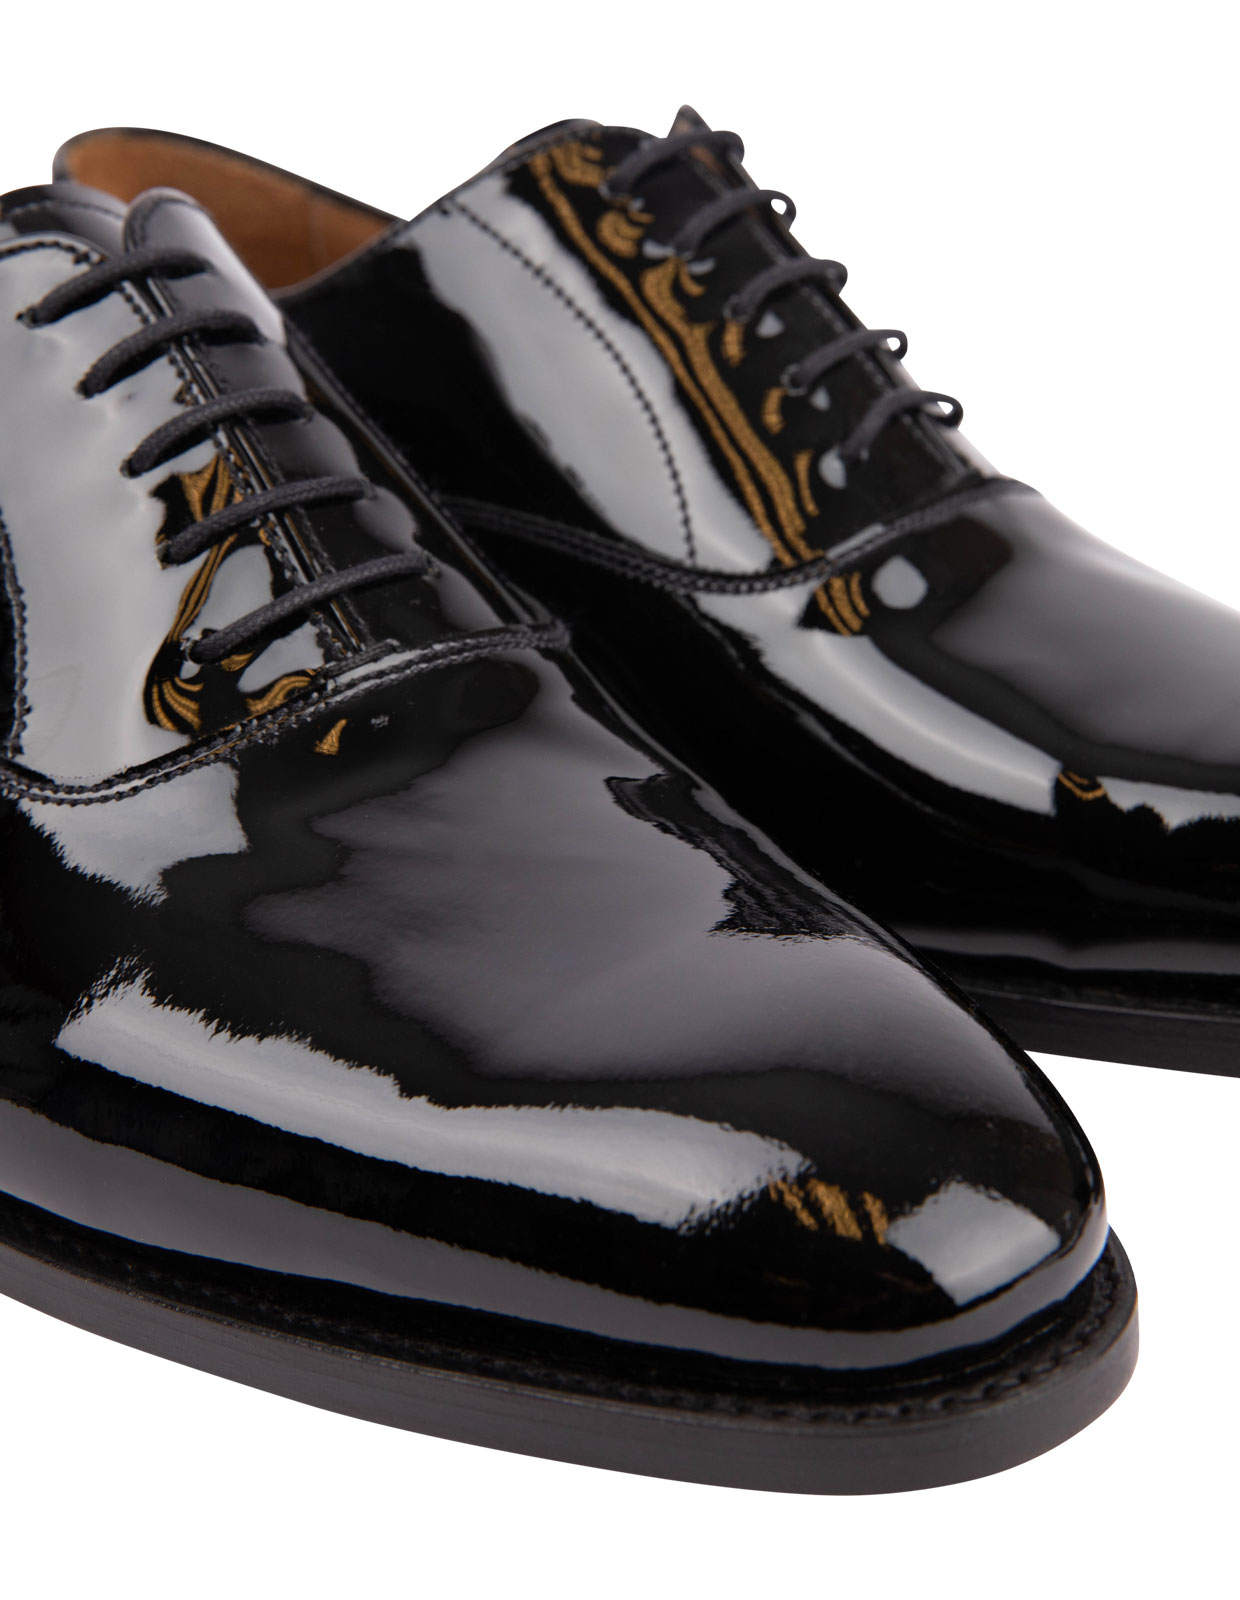 Patent Leather Oxford Shoe Black